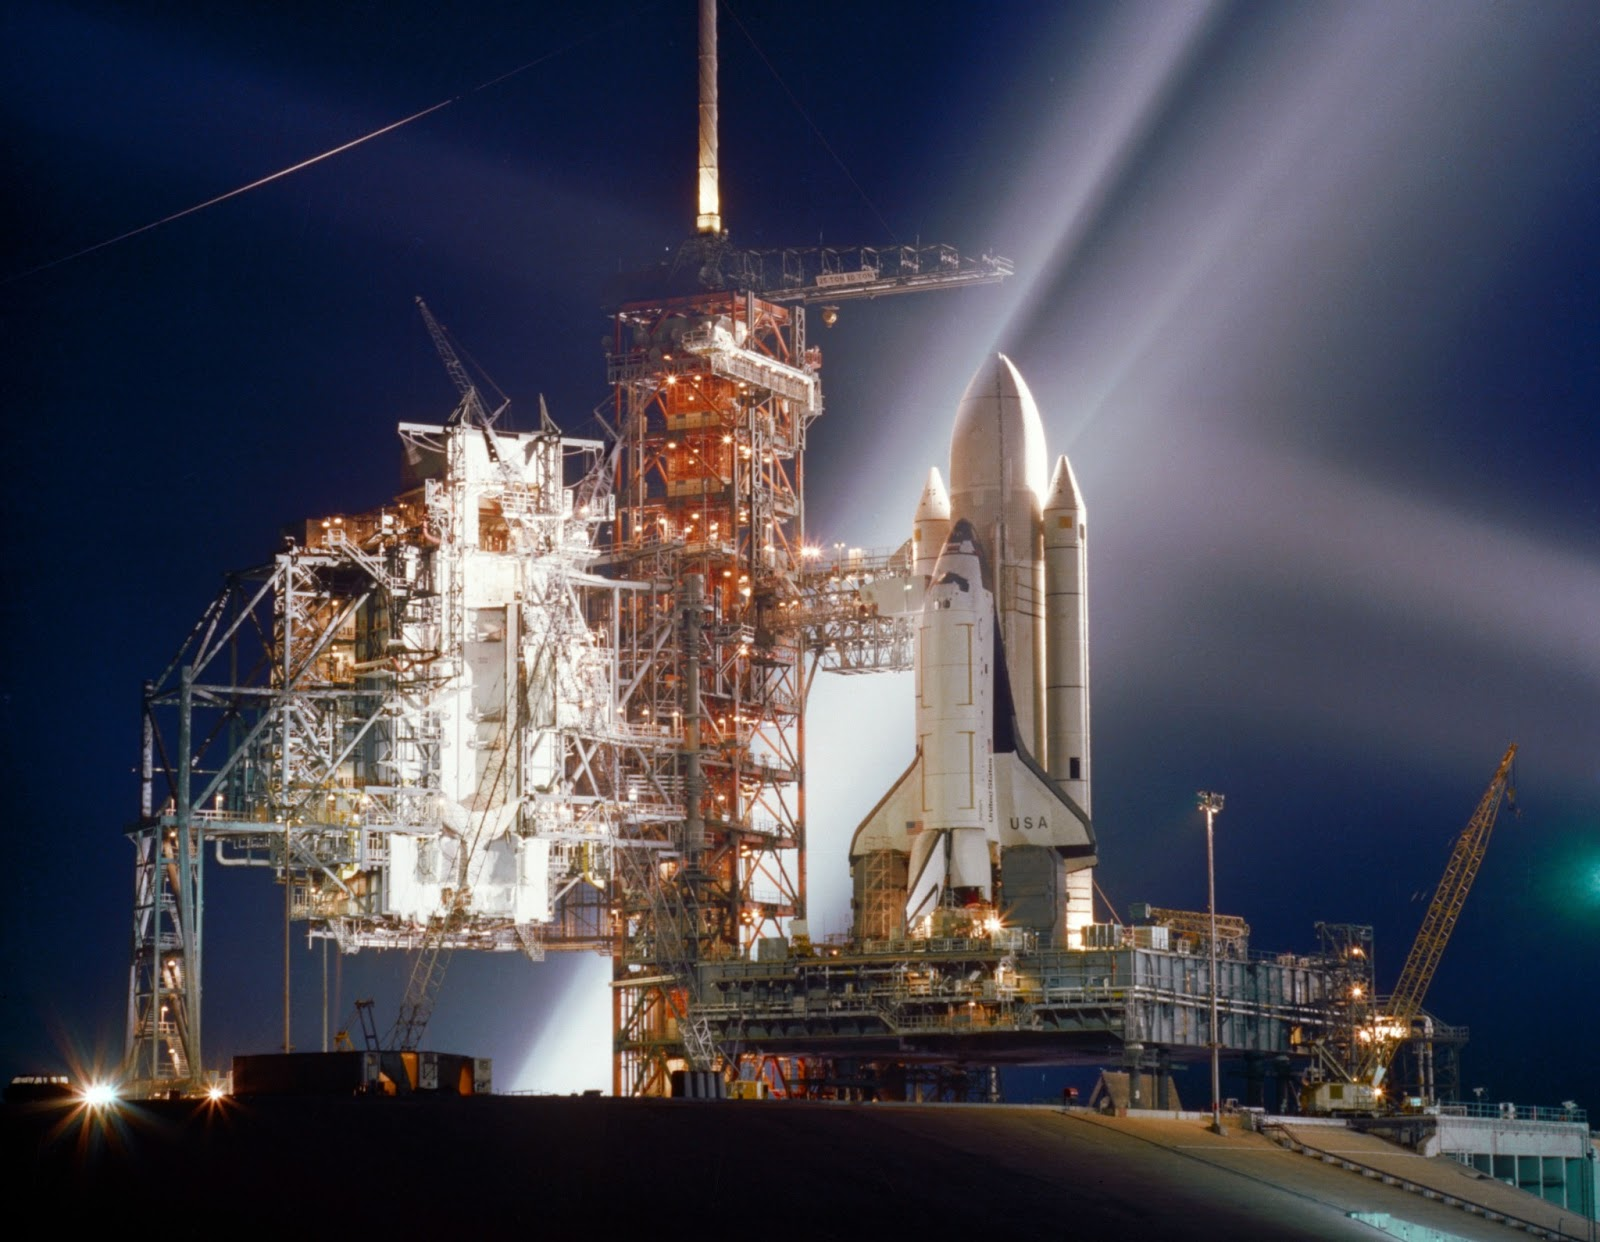 Space Shuttle Discovery (OV 103) Interactive Virtual Tour